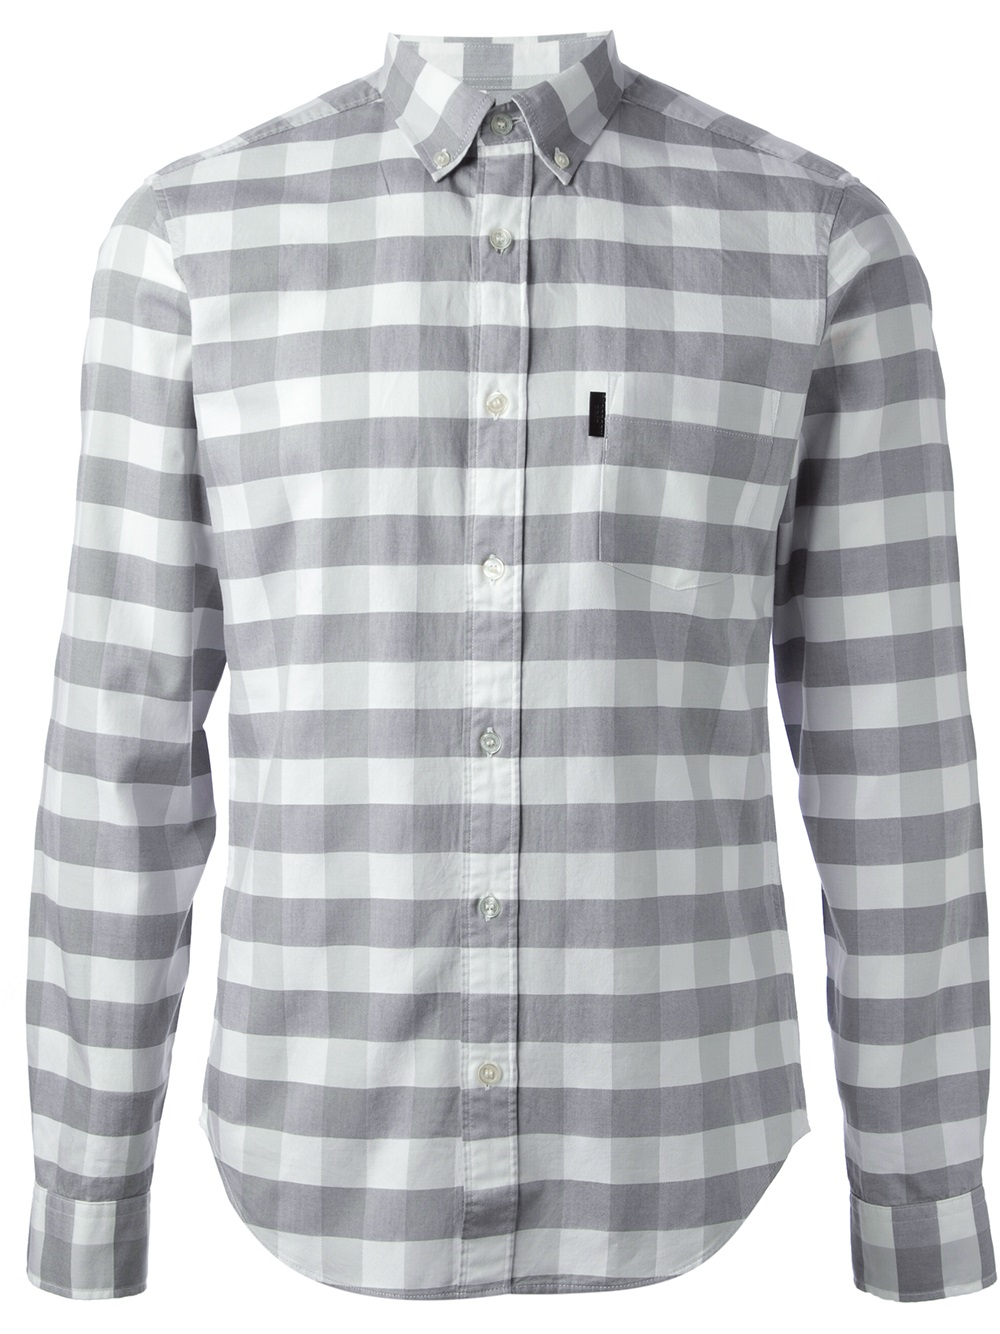 Burberry brit checked shirt in gray for men lyst for Burberry brit checked shirt